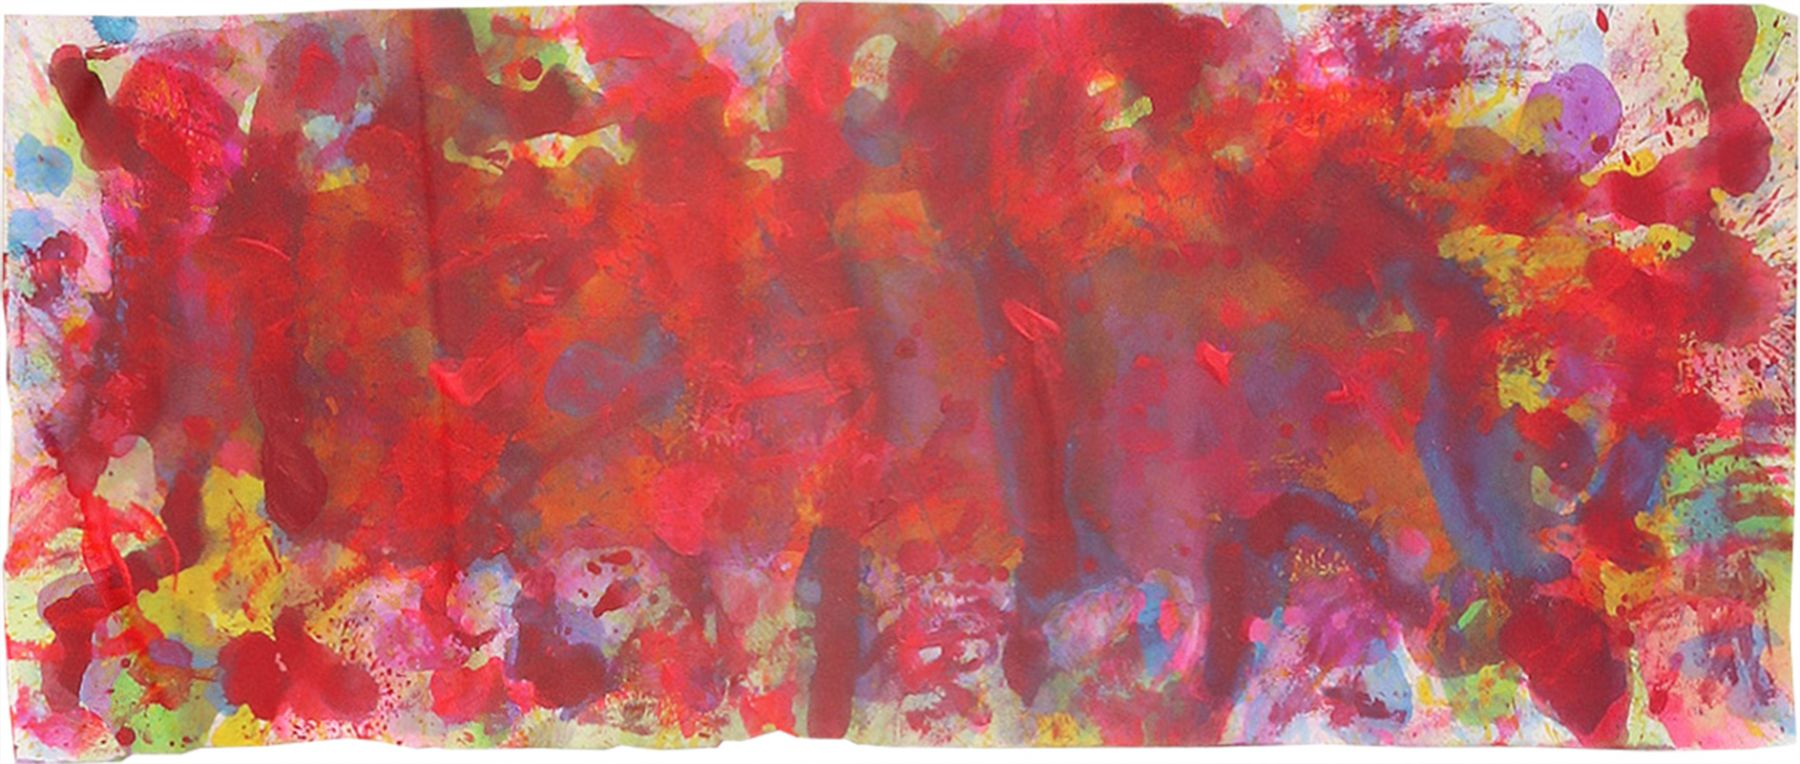 J. Steven Manolis, REDWORLD-Extravaganza, 2015, Acrylic and watercolor on paper, 9.5 x 23.5 inches(with-frame), Framed size 15.625 x 30.25 inches, Abstract expressionism paintings for sale at Manolis Projects Art Gallery, Miami, Fl